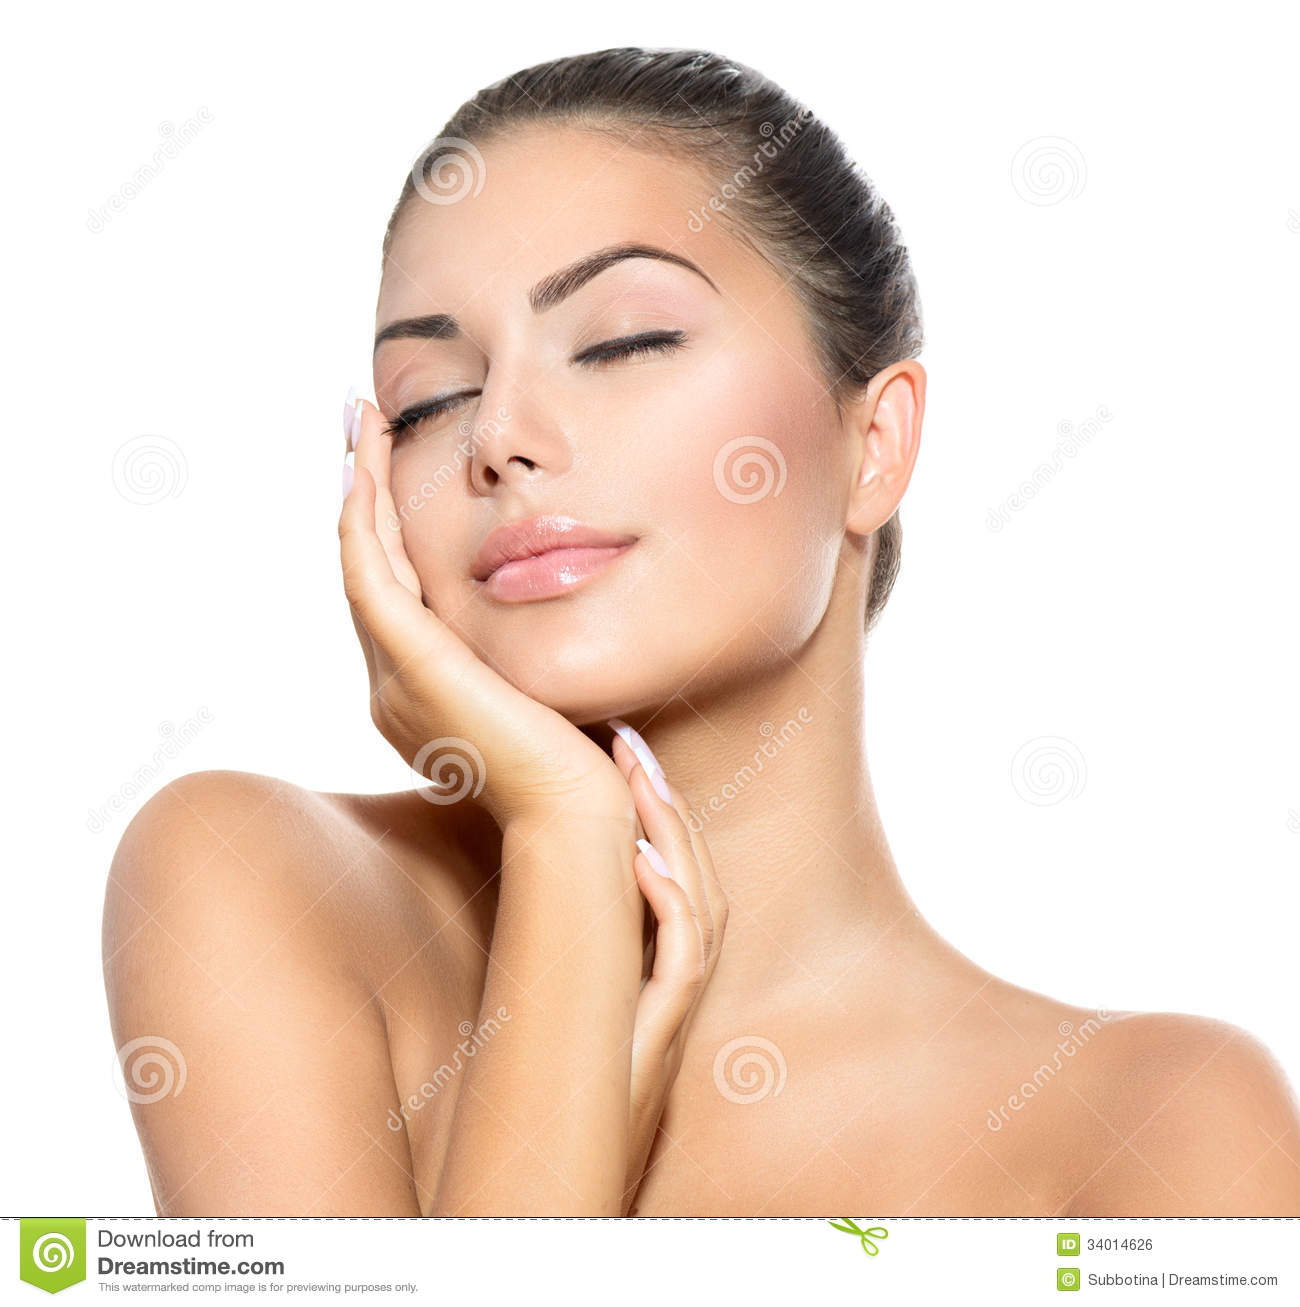 Spa Woman Touching Her Face Royalty Free Stock Image Image 34014626